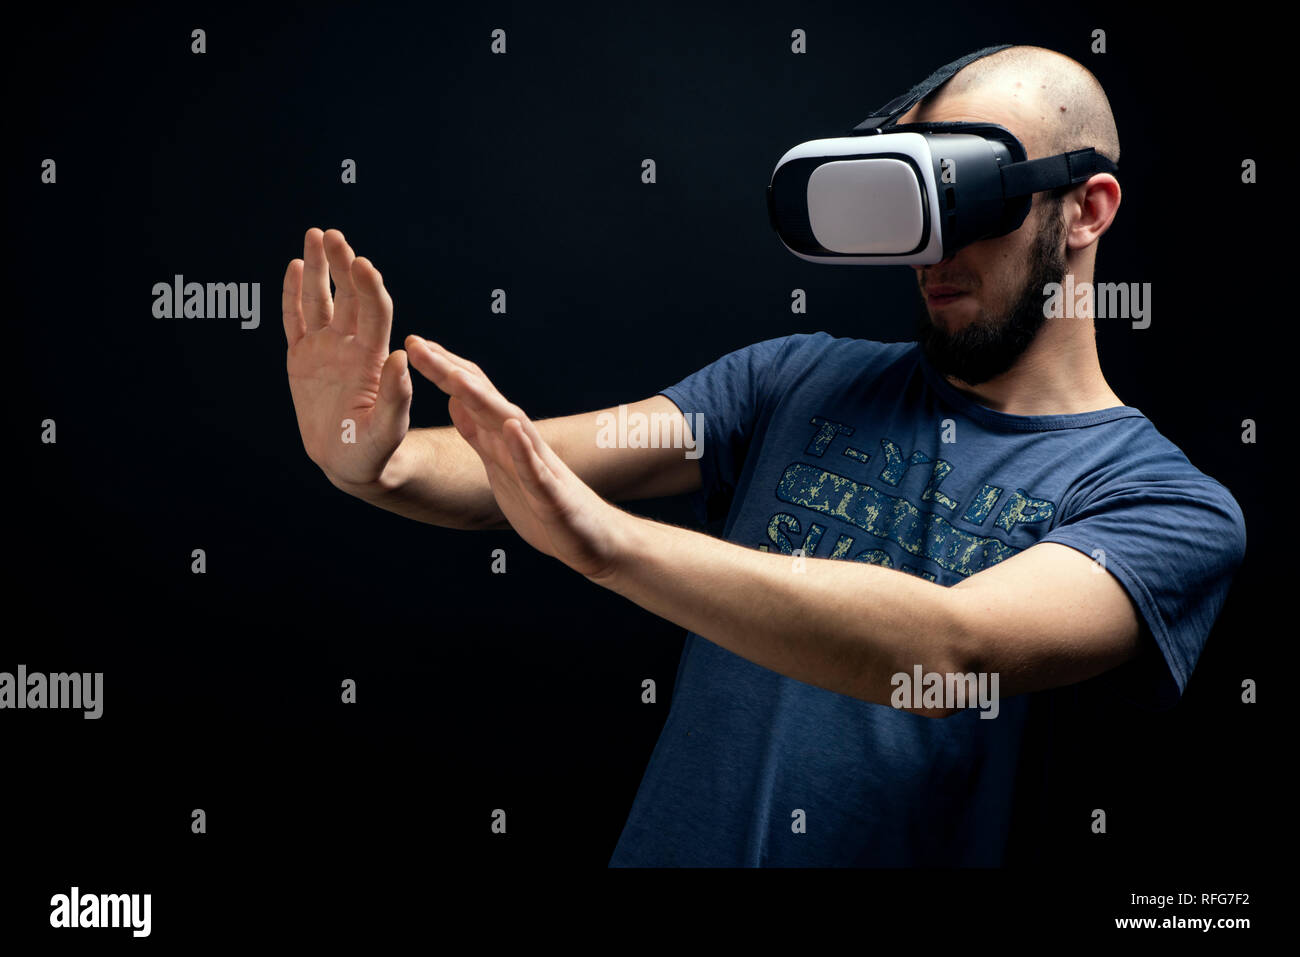 Male using VR gear is dodging with both hands. Shot in studio against black background - Stock Image